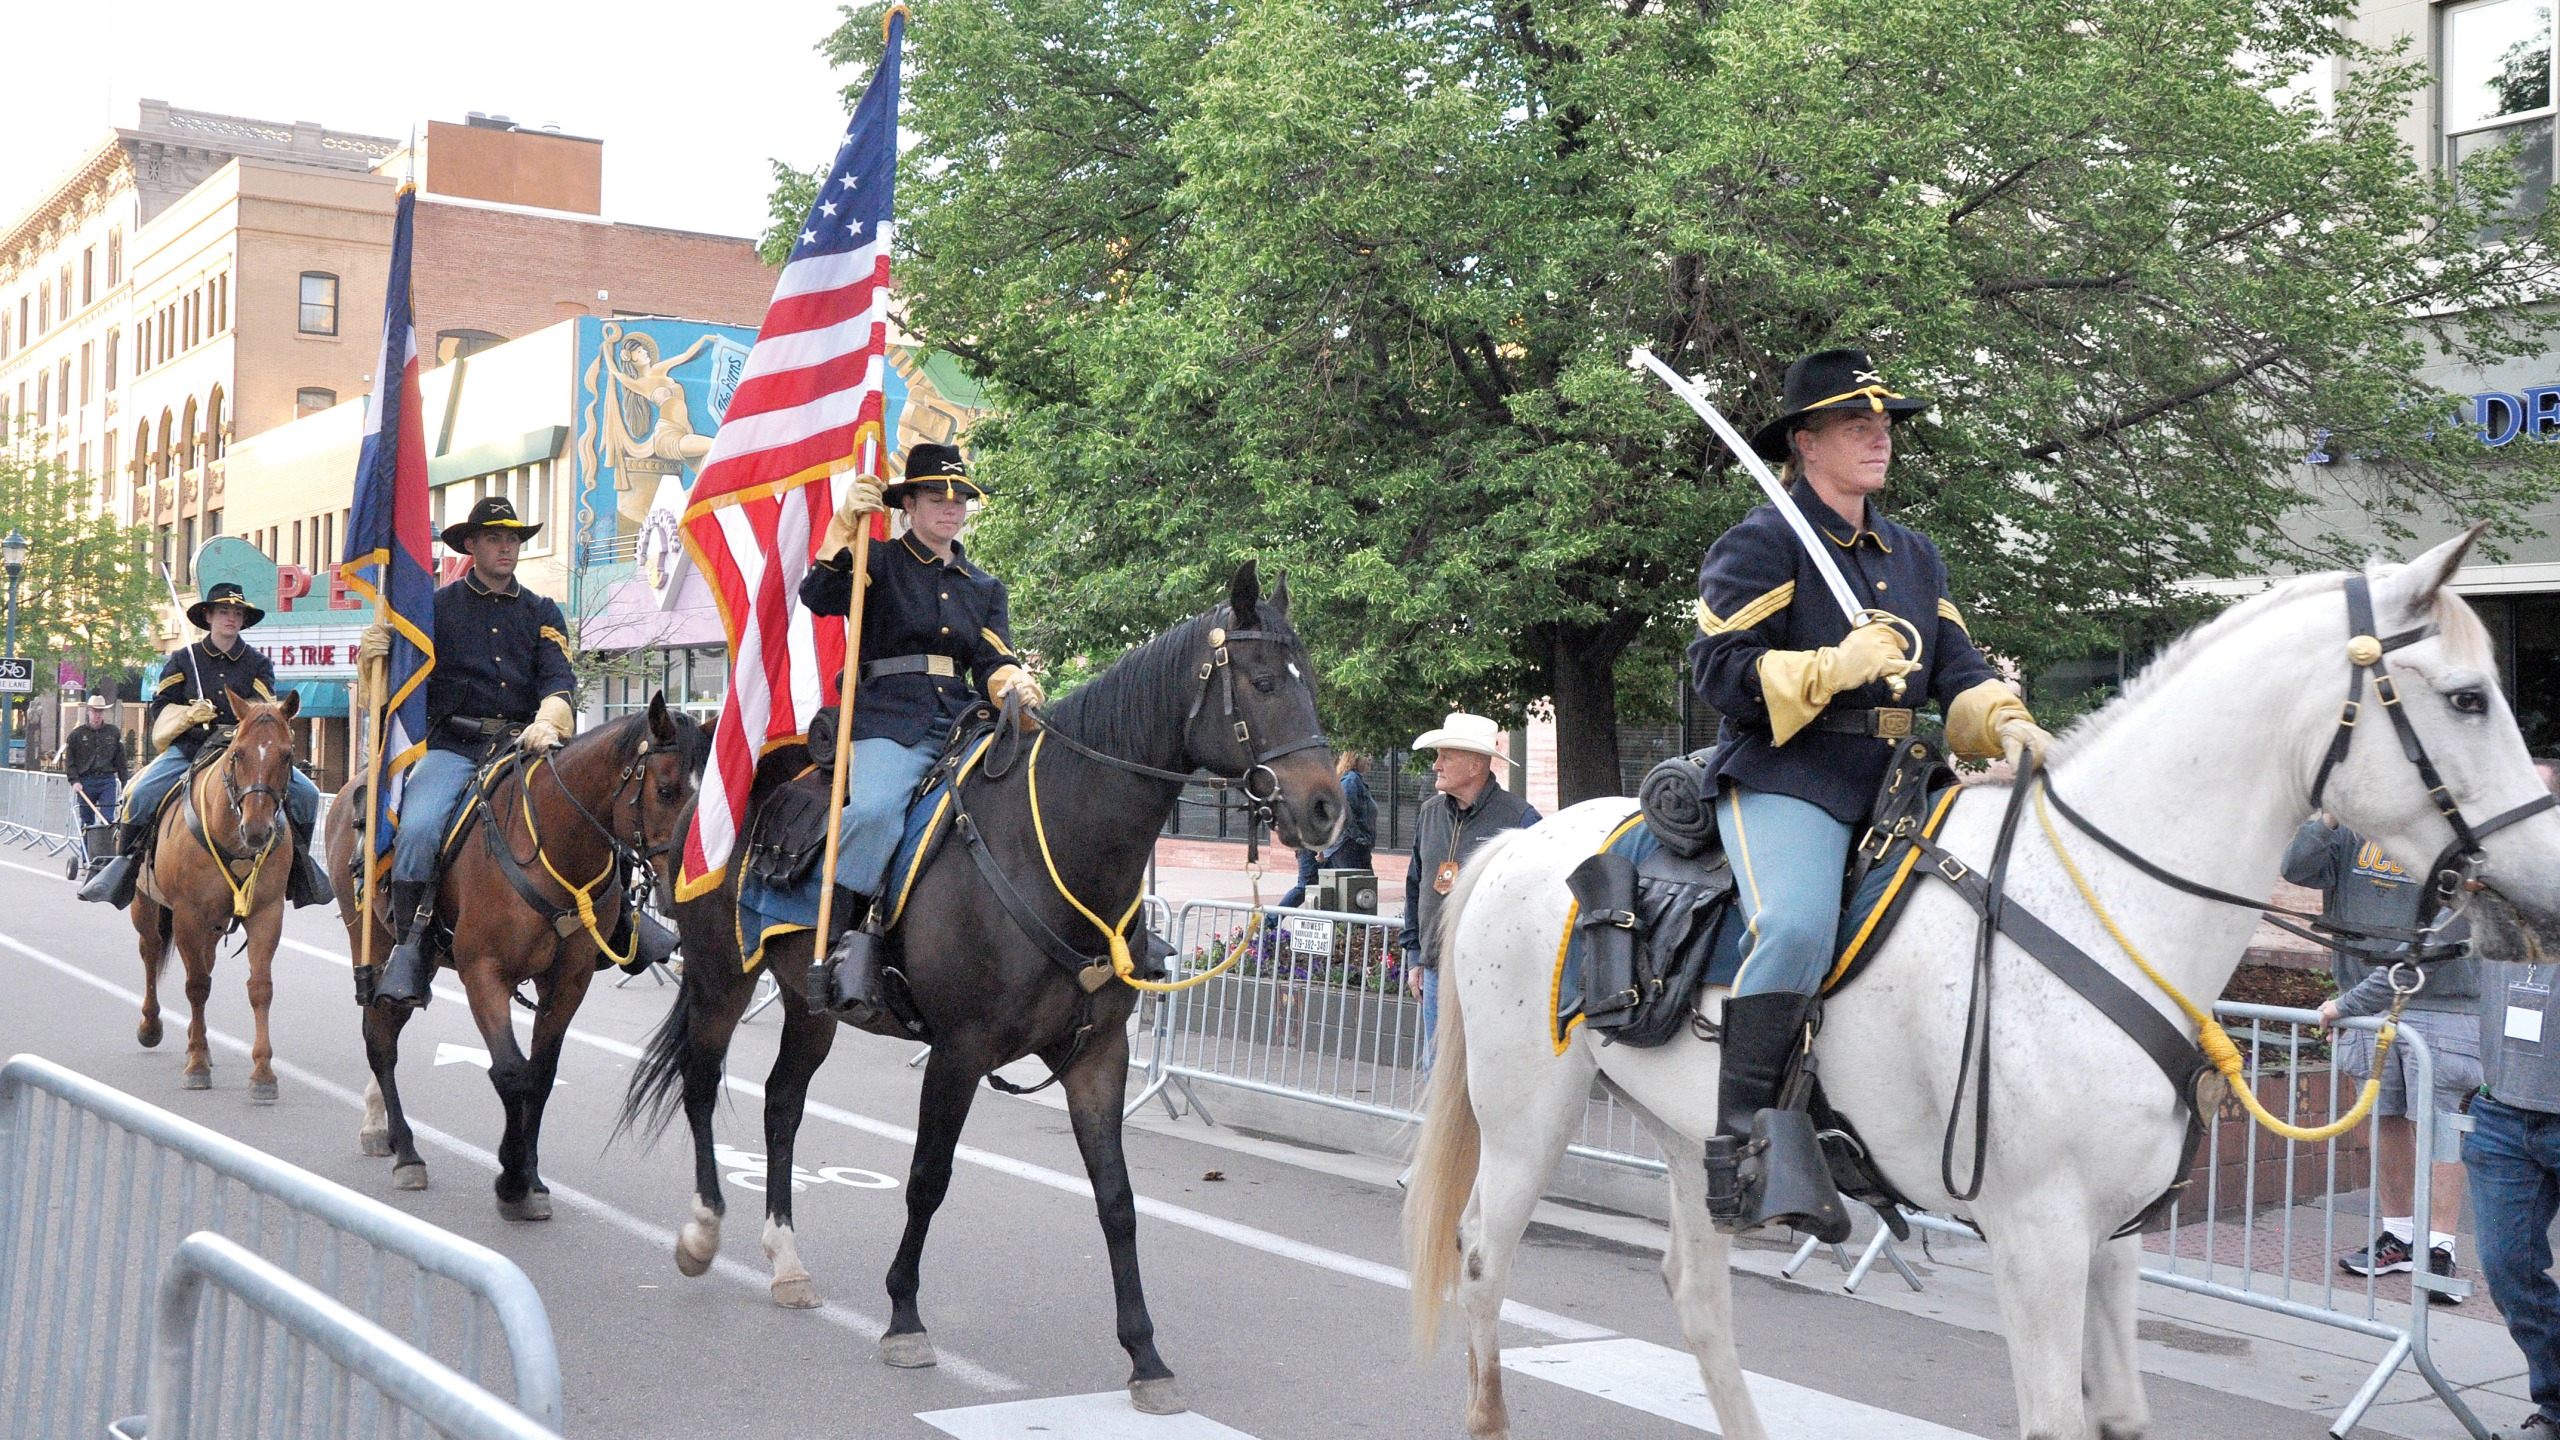 The 4th Infantry Division and Fort Carson Mounted Color Guard present the colors June 19, 2019, at the Western Street Breakfast in downtown Colorado Springs. (Photo by Norman Shifflett/Fort Carson Public Affairs Office)